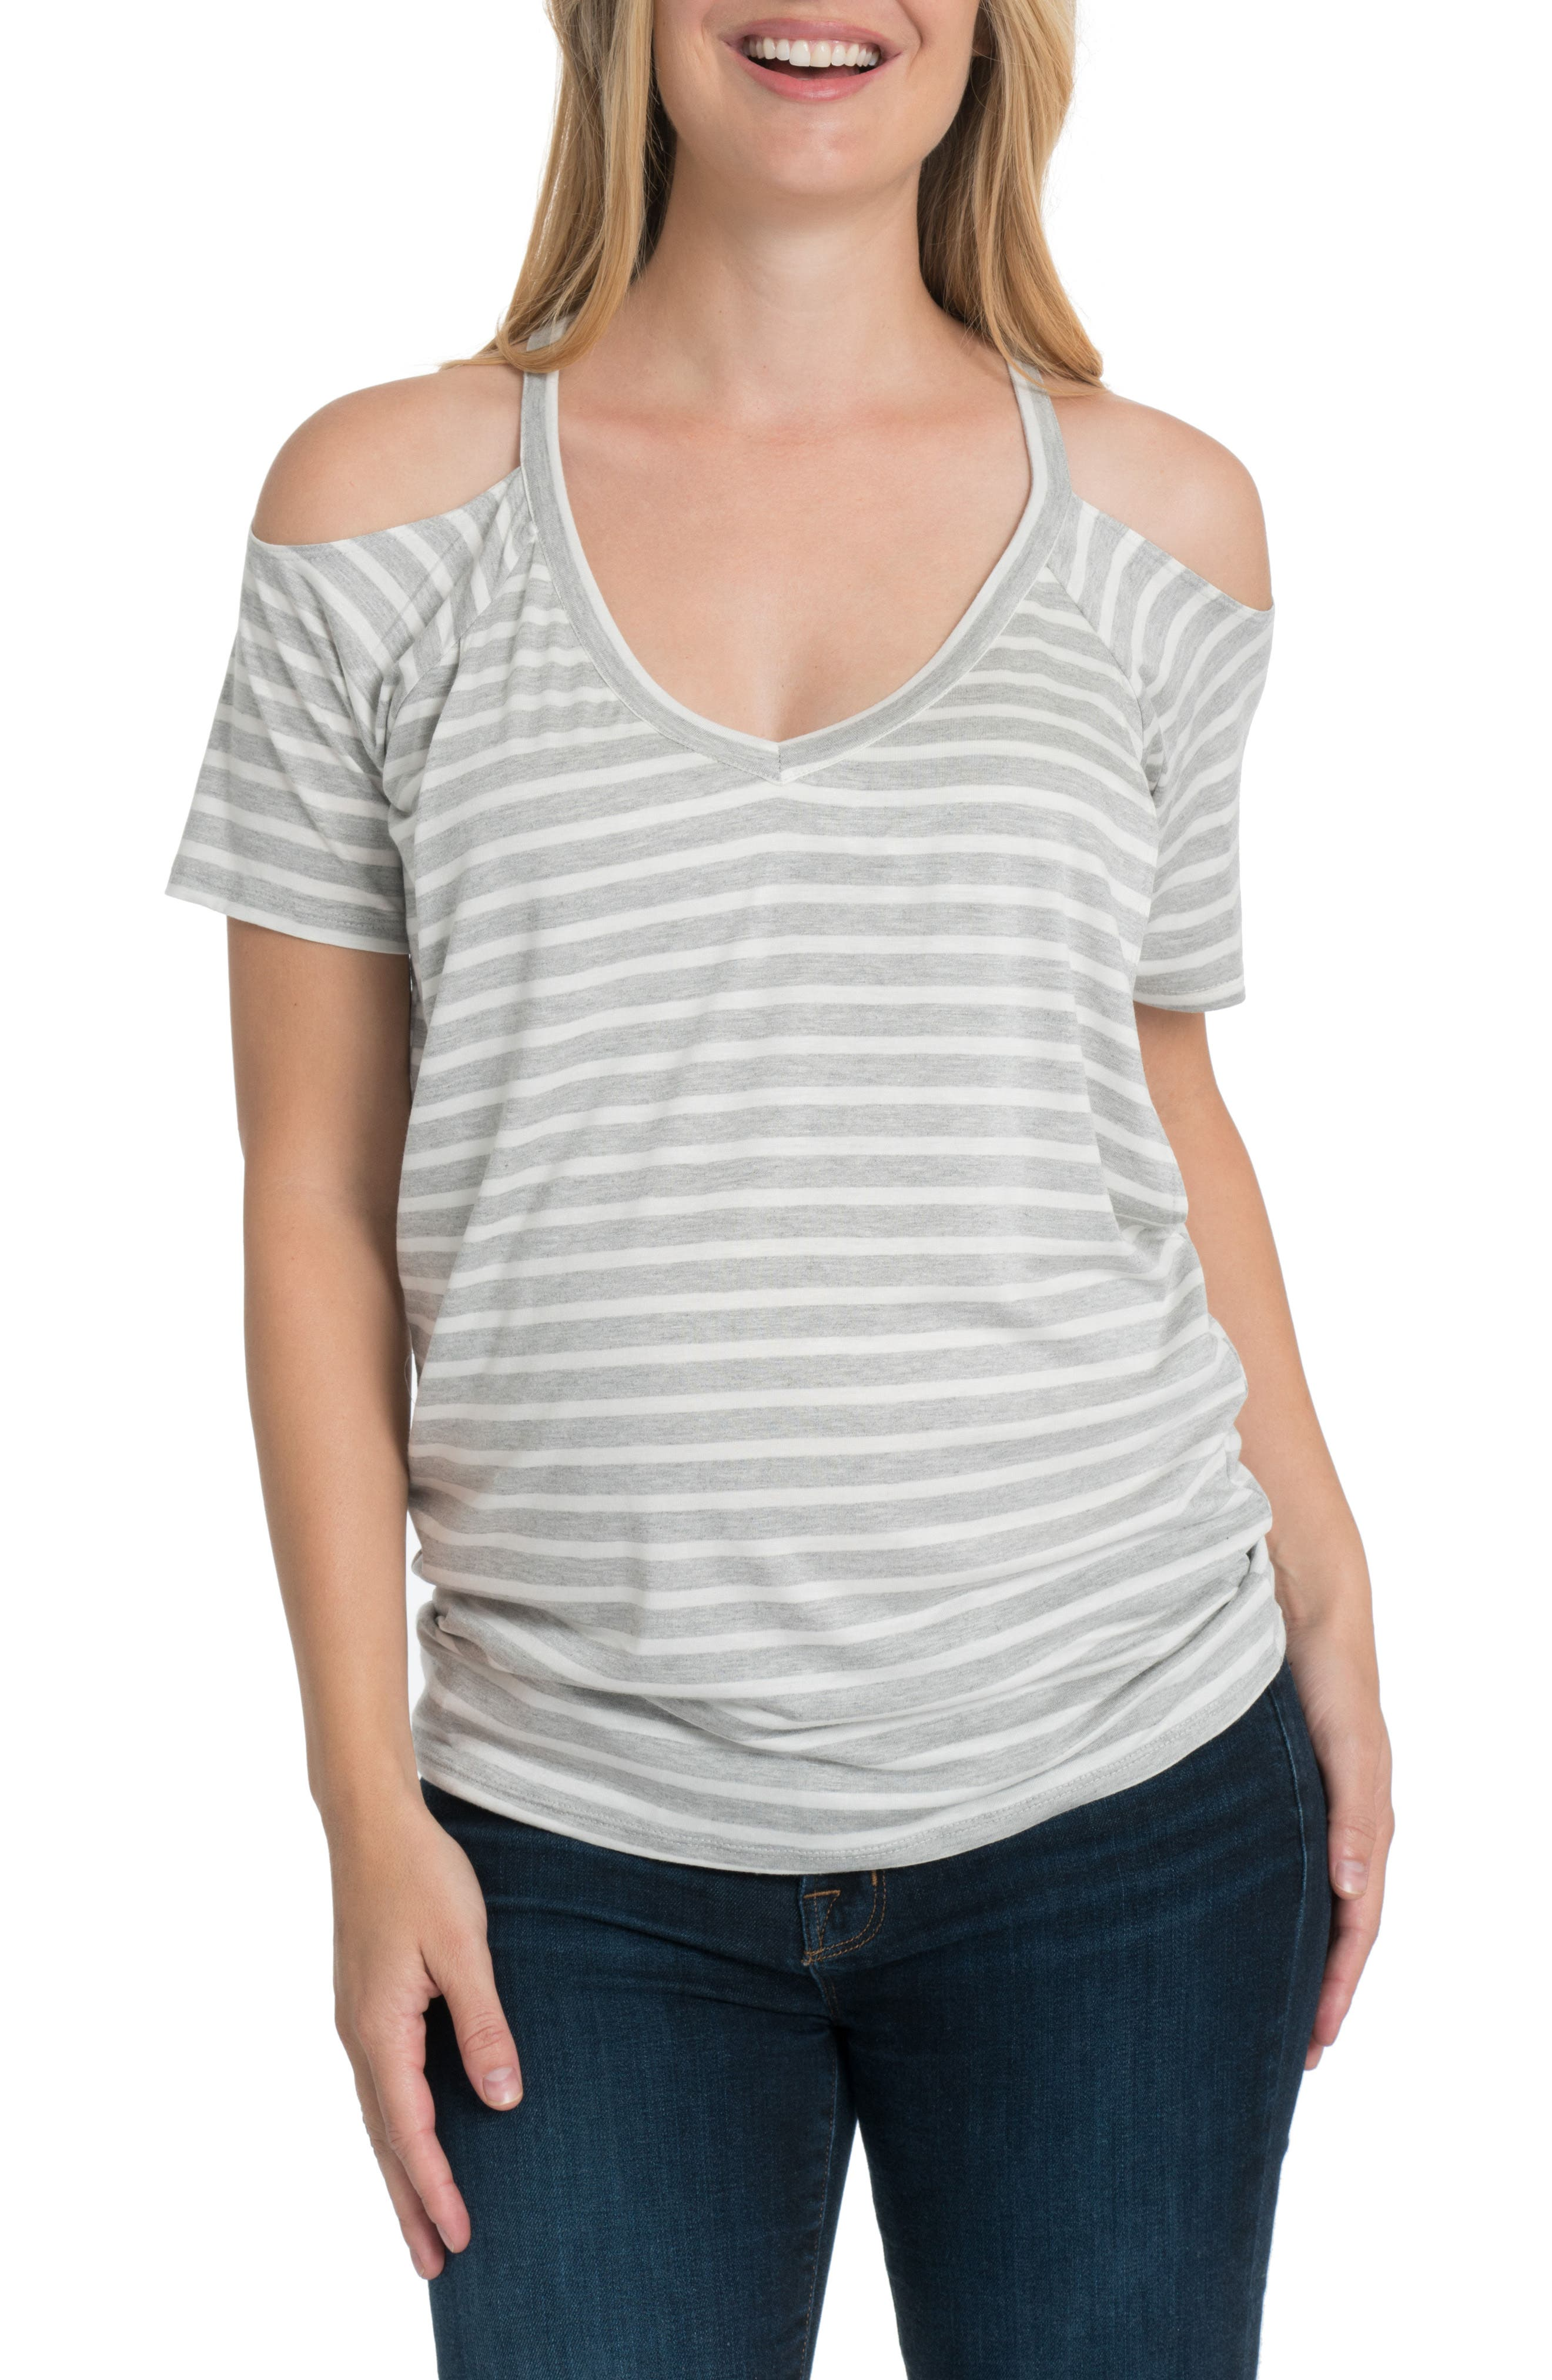 Bliss Cold Shoulder Maternity/Nursing Tee,                             Main thumbnail 1, color,                             Gray And White Stripe